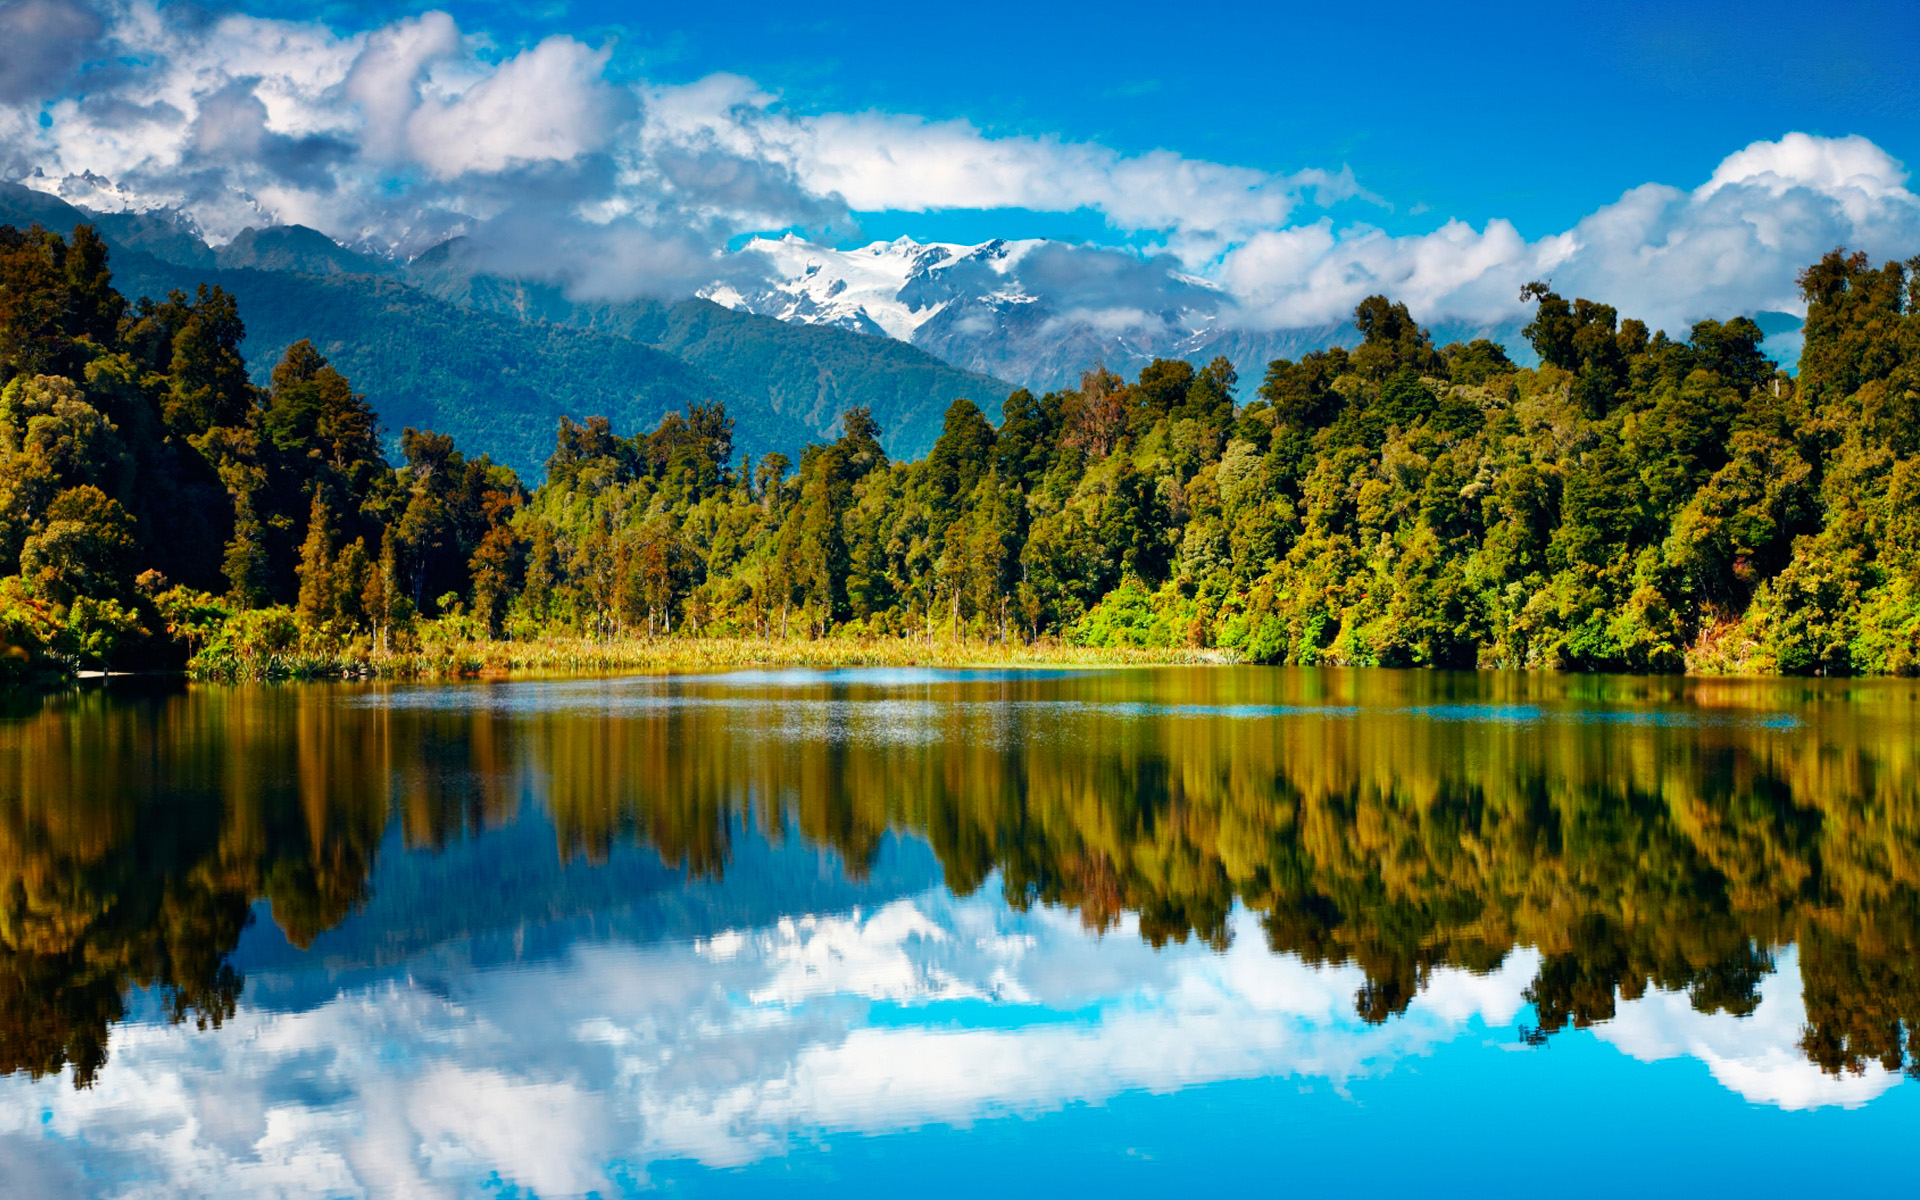 New Zealand Wallpapers - New Zealand Live Images, HD Wallpapers ...